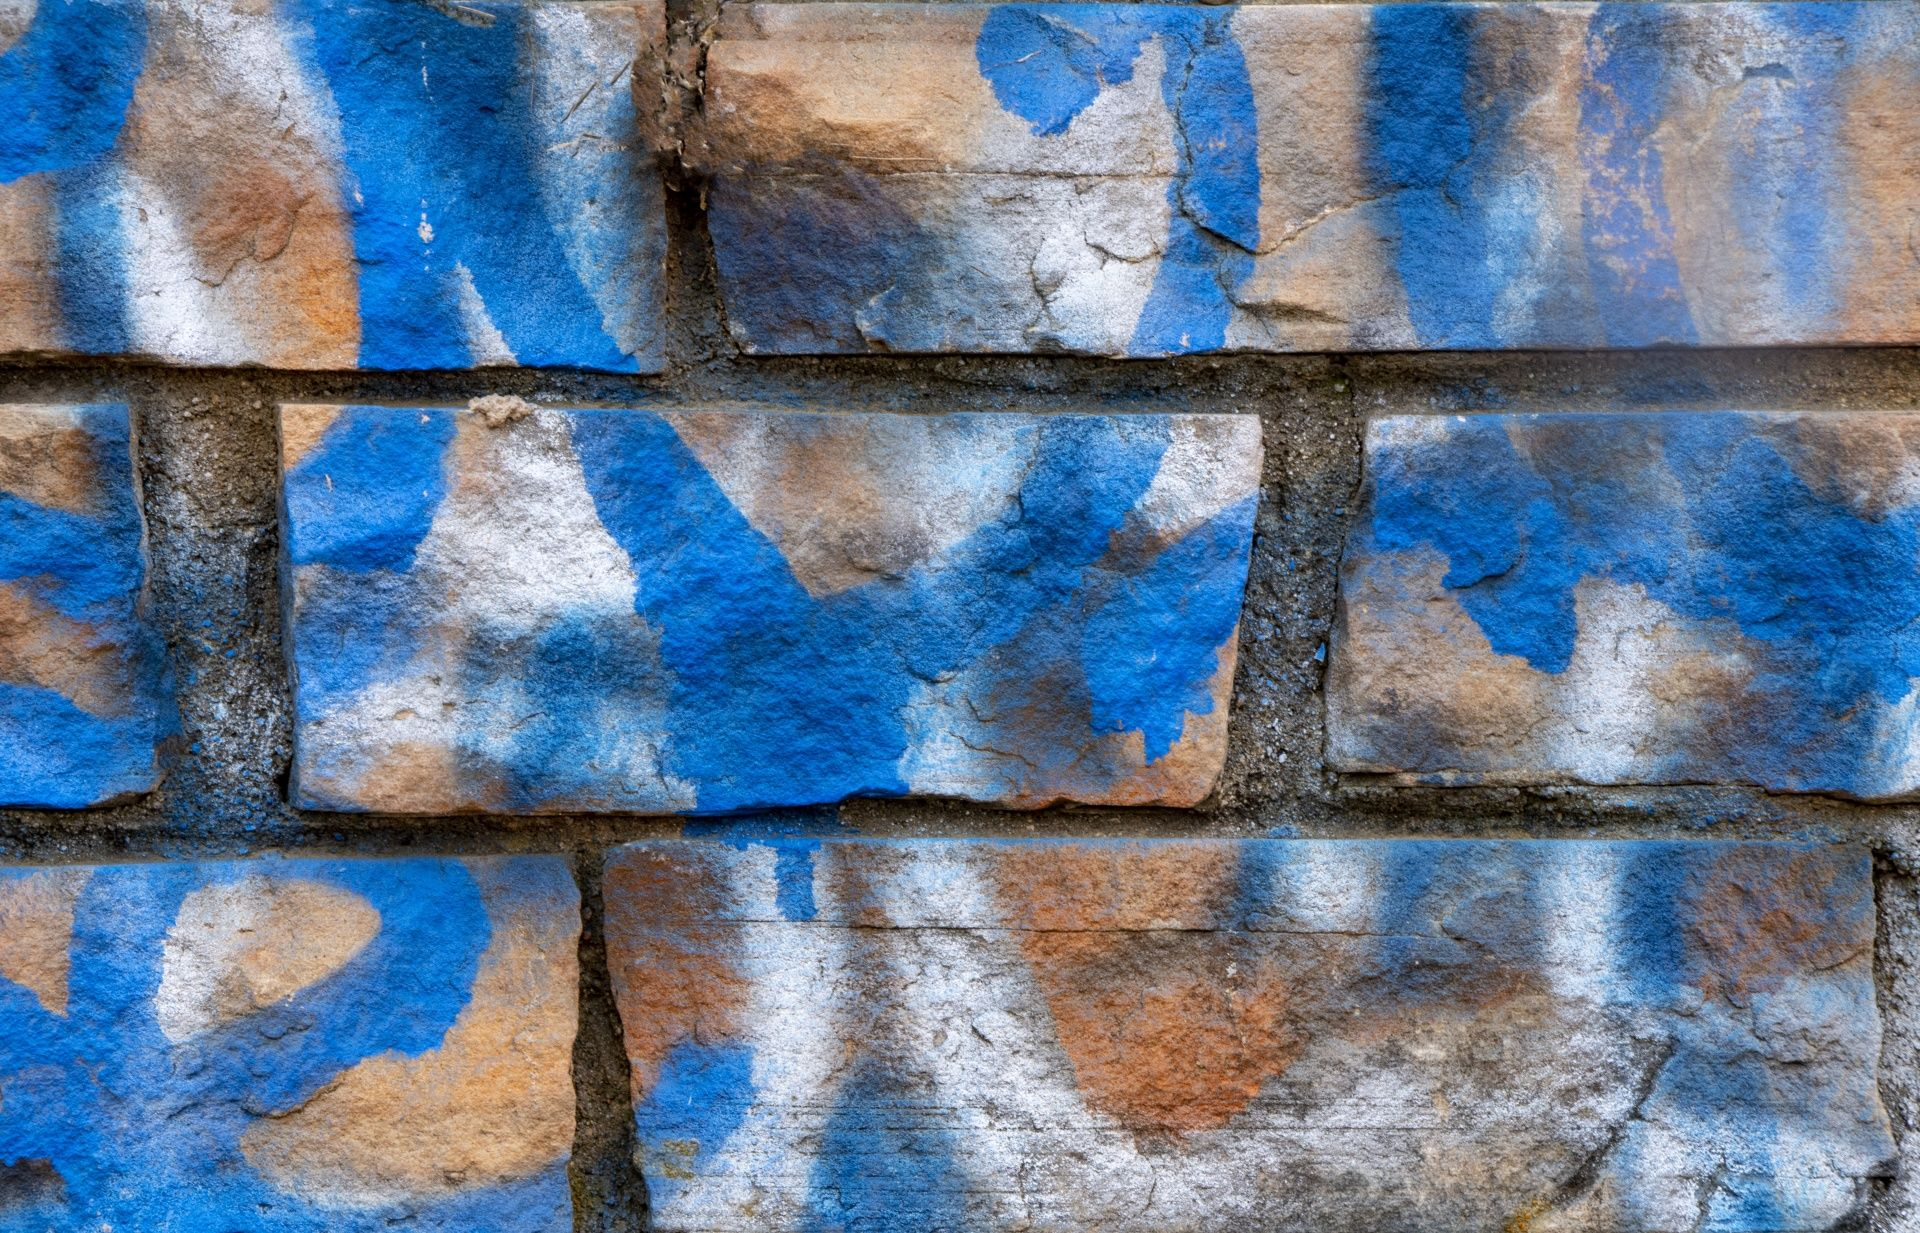 Graffiti Brick Background Backgrounds And Wallpaper Backgrounds